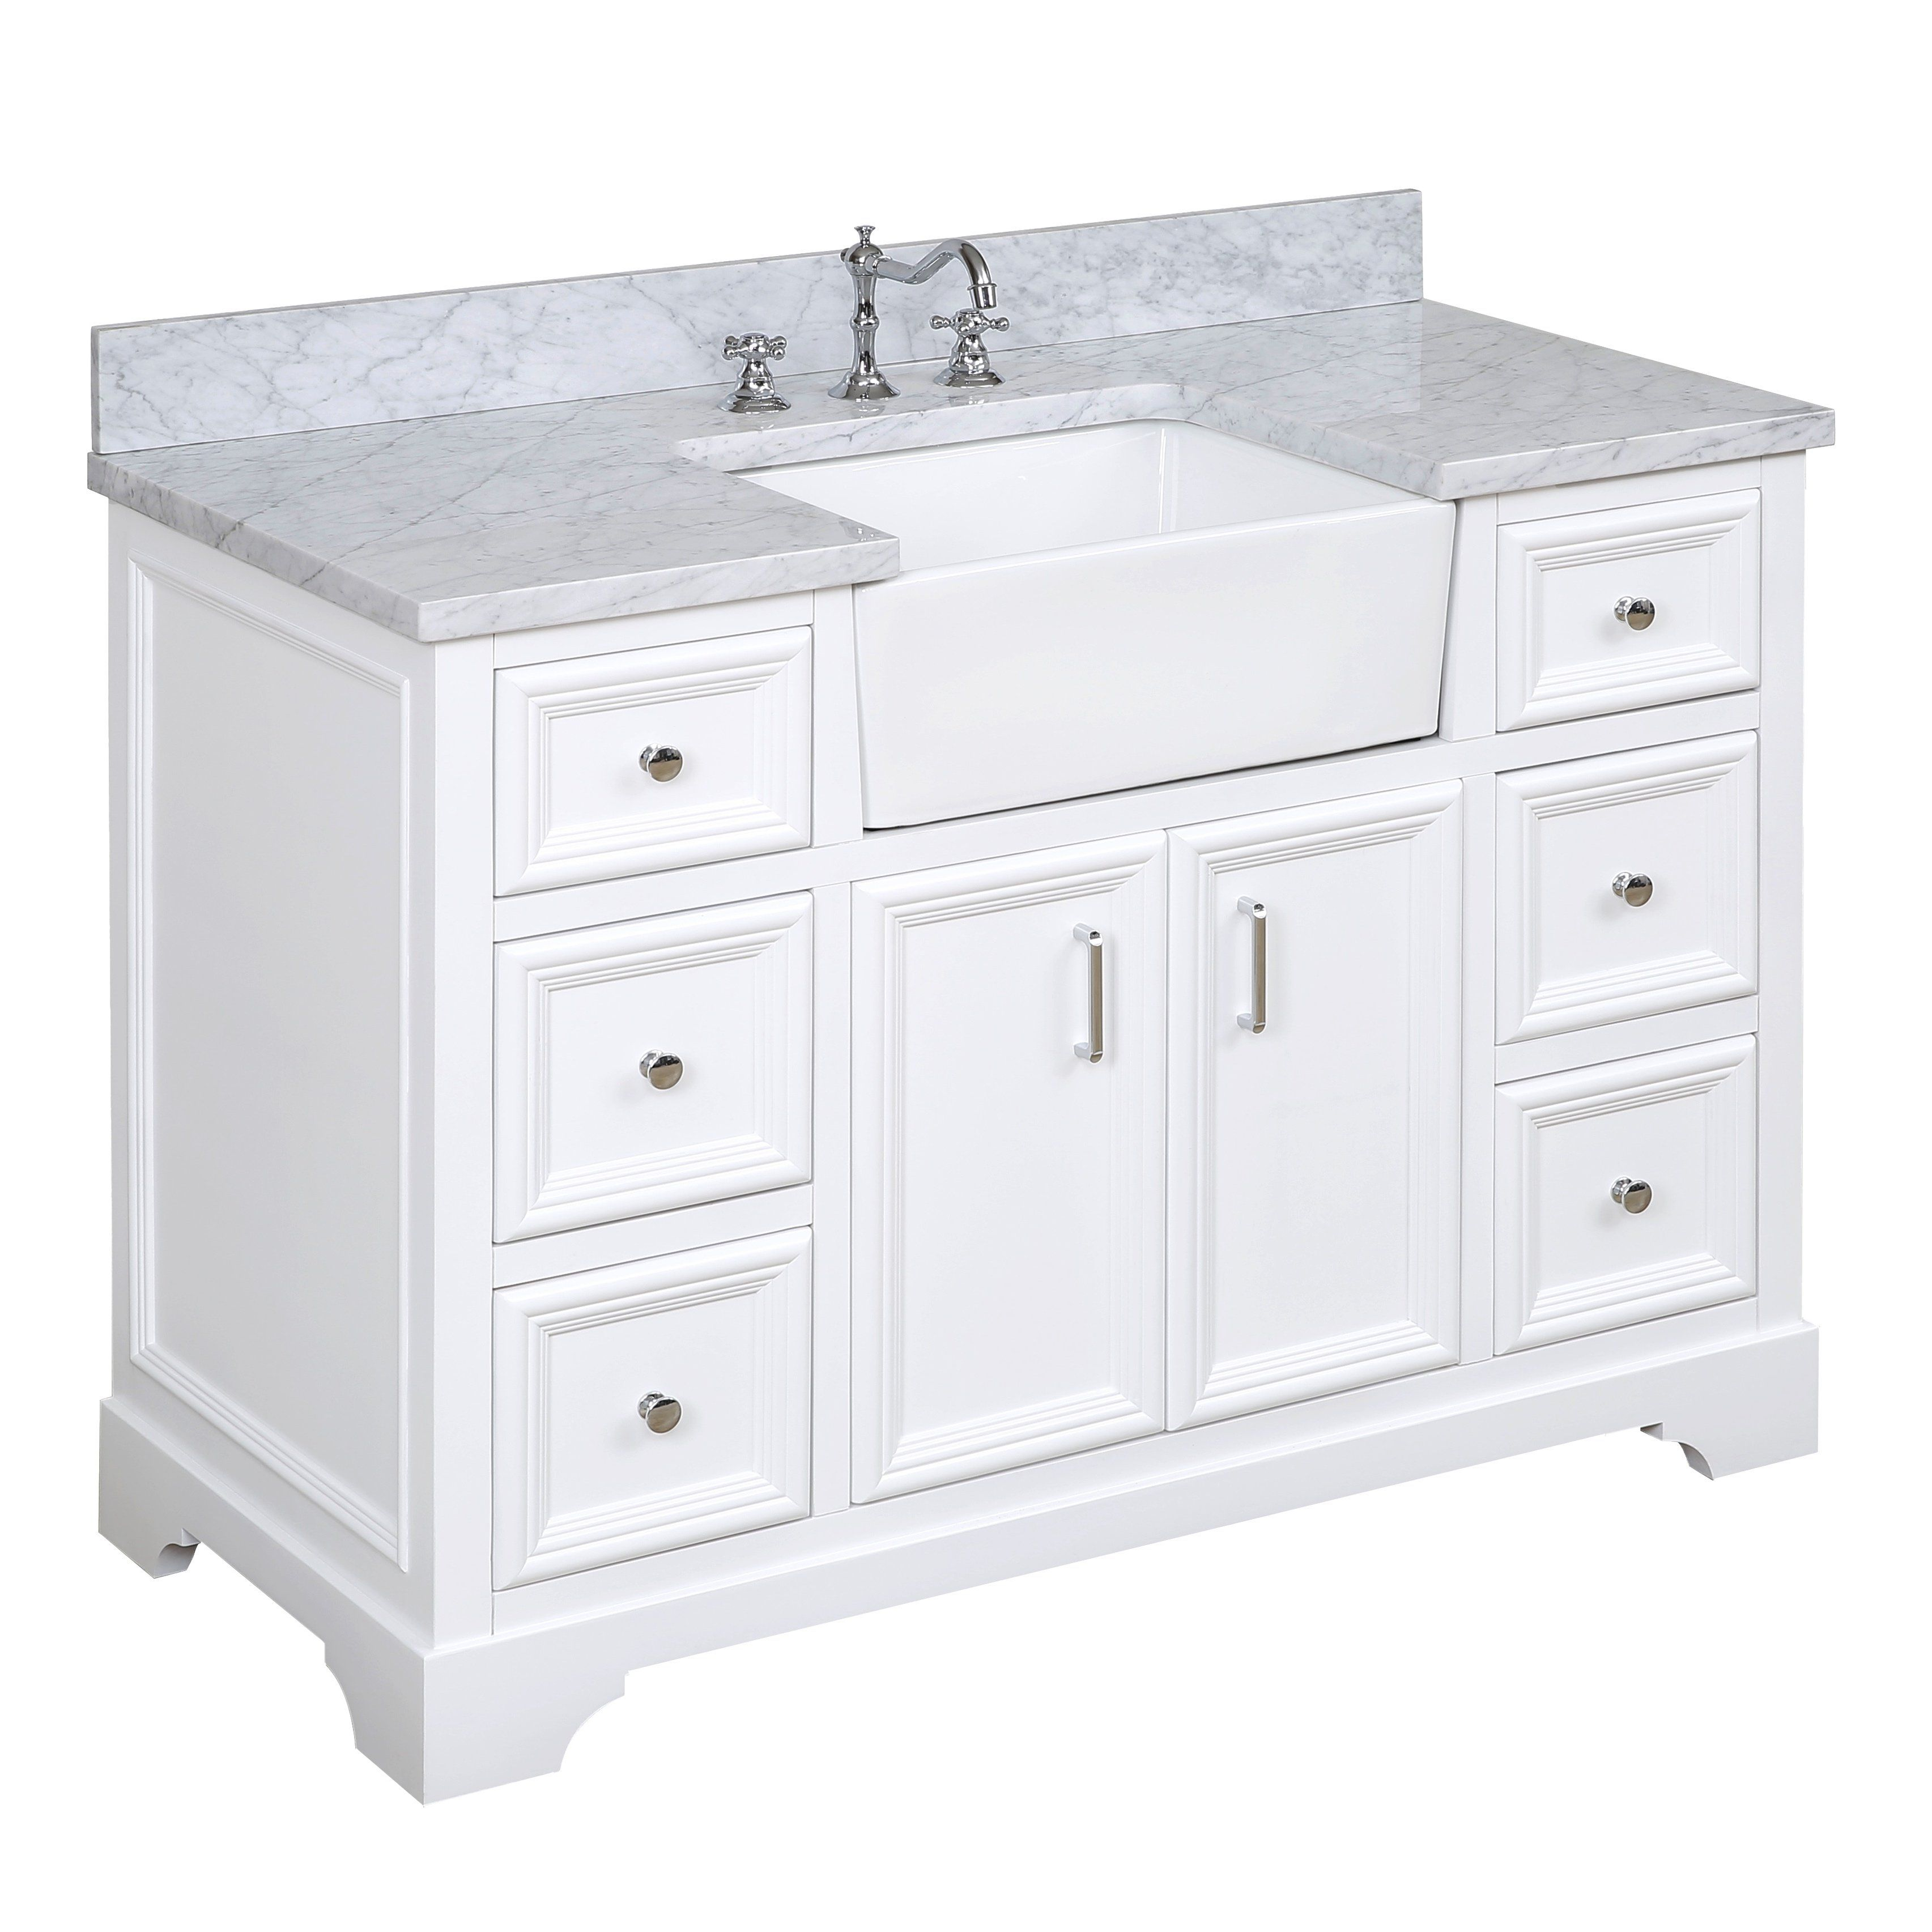 Zelda 48inch Farmhouse Vanity with Carrara Marble Top in